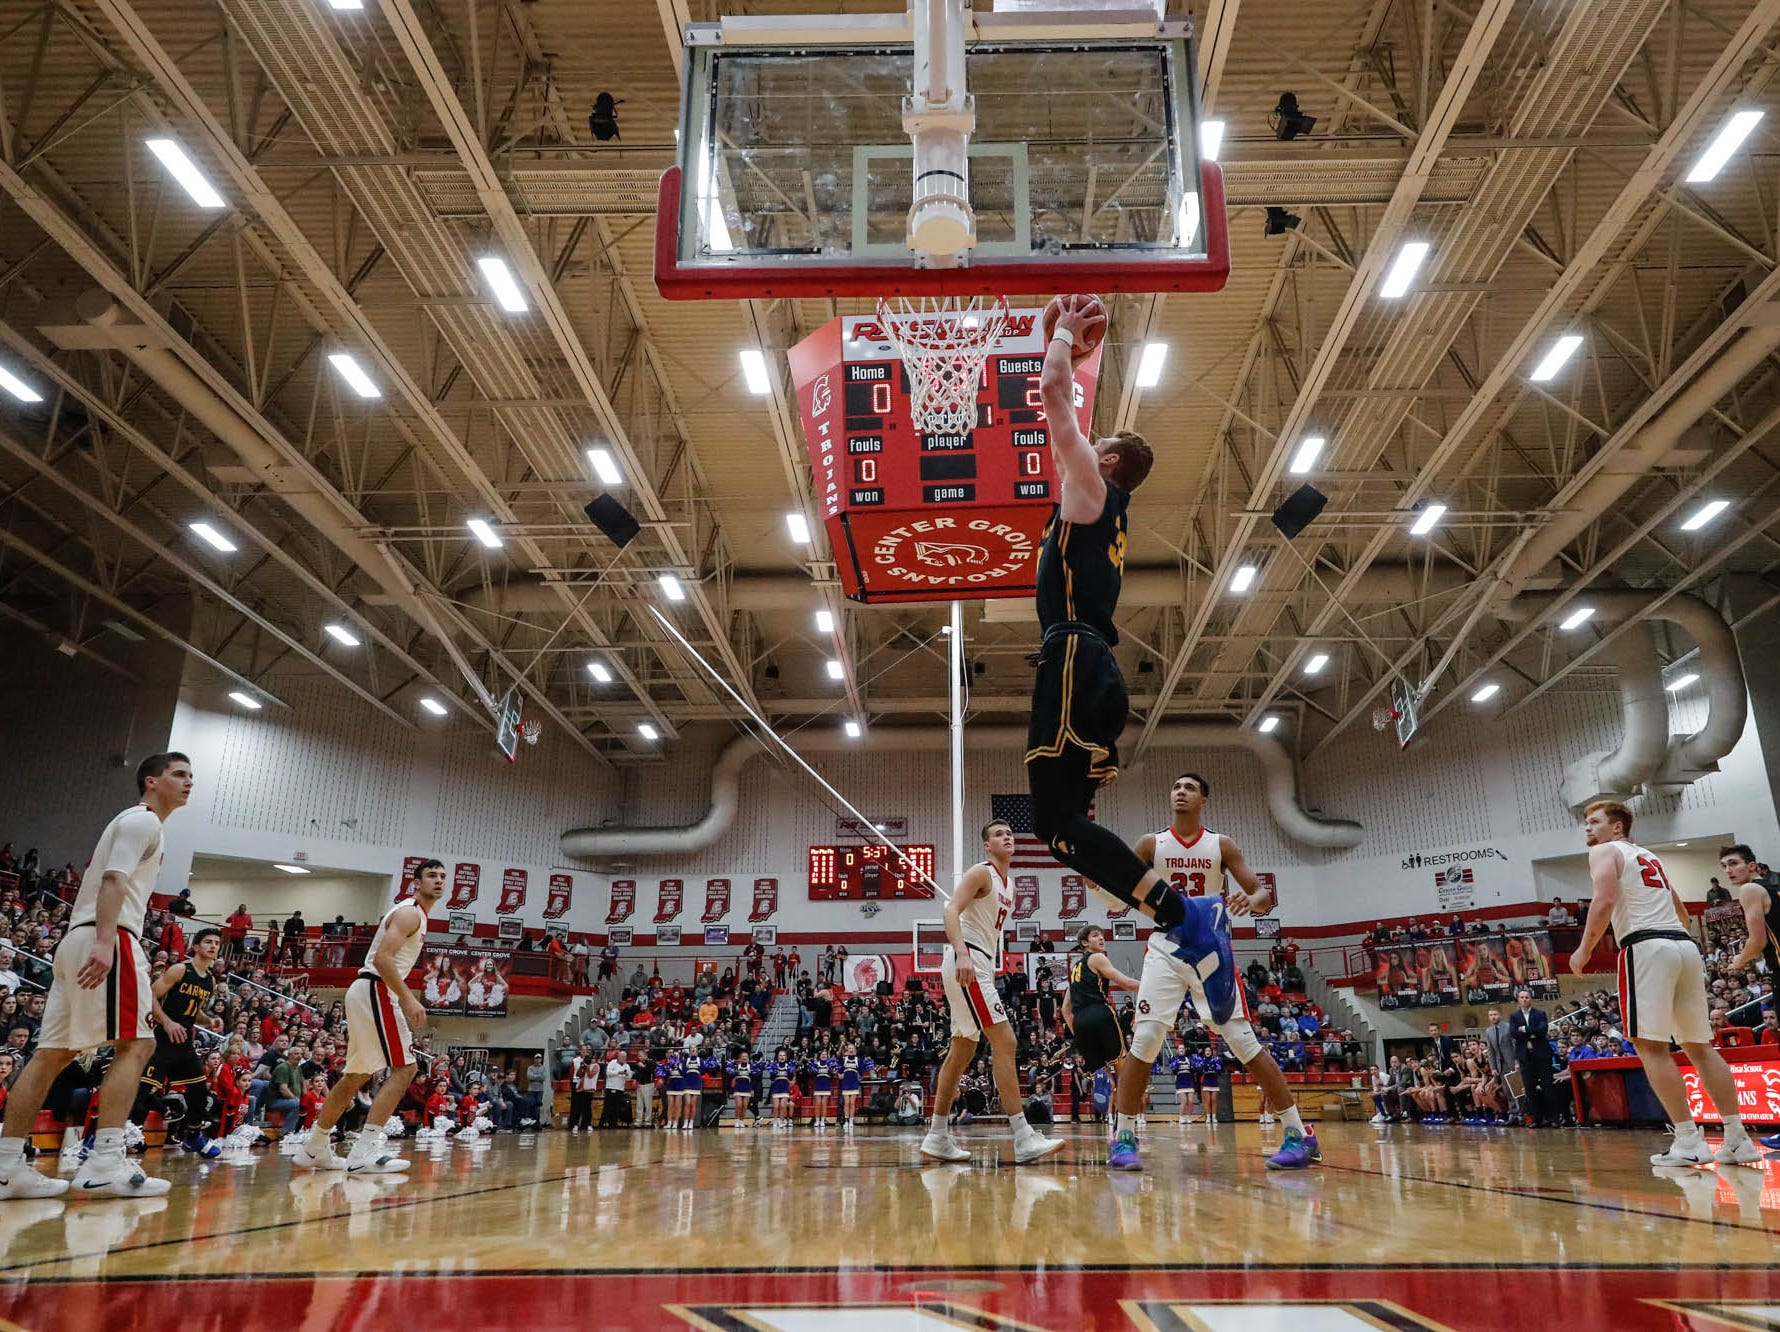 Carmel High School's John Michael Mulloy (33), dunks the ball during a game between Center Grove High School and Carmel High School, held at Center Grove on on Friday, Jan. 4, 2019.